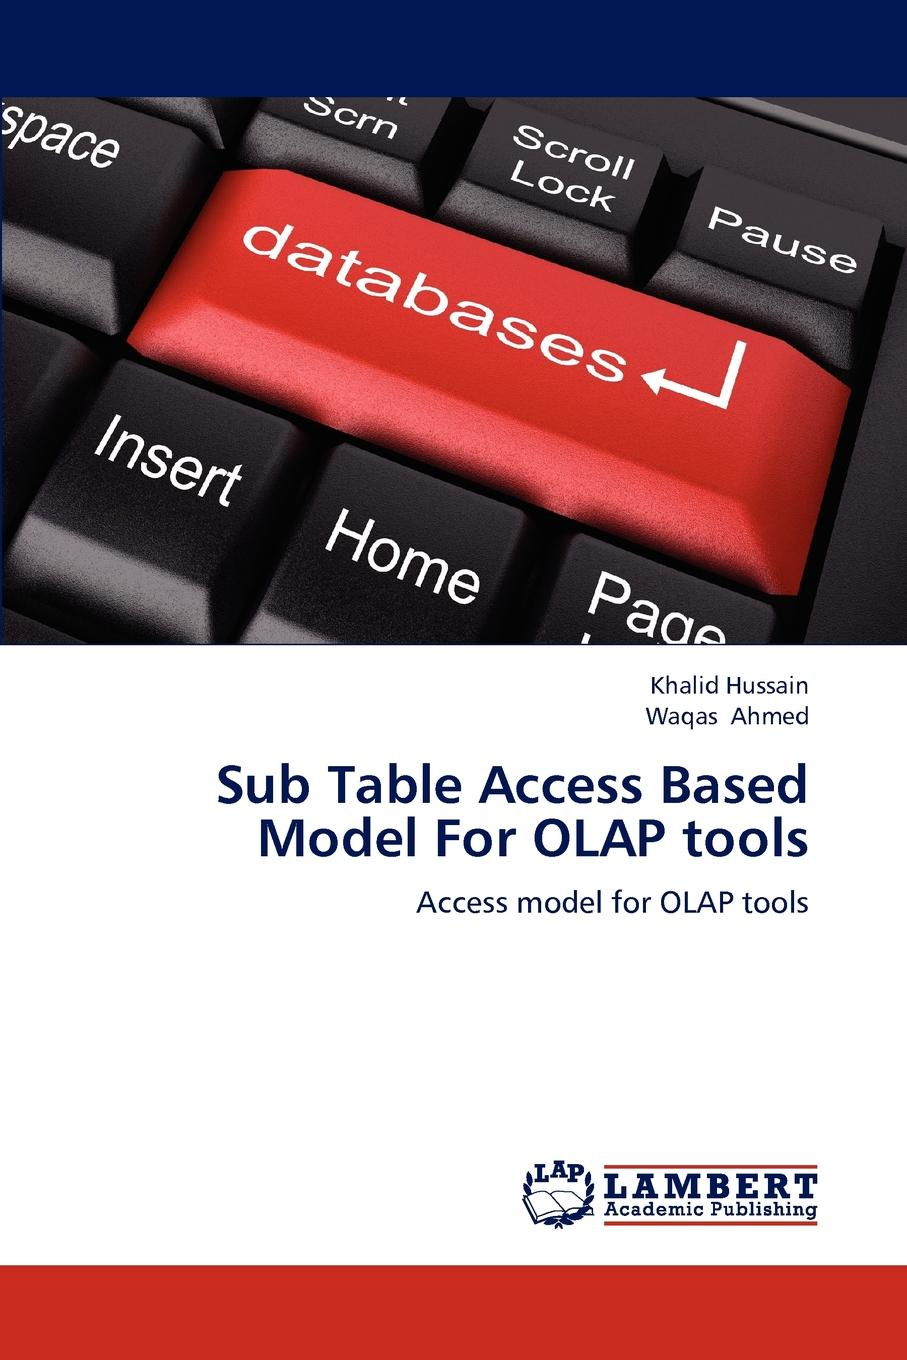 Hussain Khalid, Ahmed Waqas Sub Table Access Based Model for OLAP Tools collaboration among data sources for information retrieval